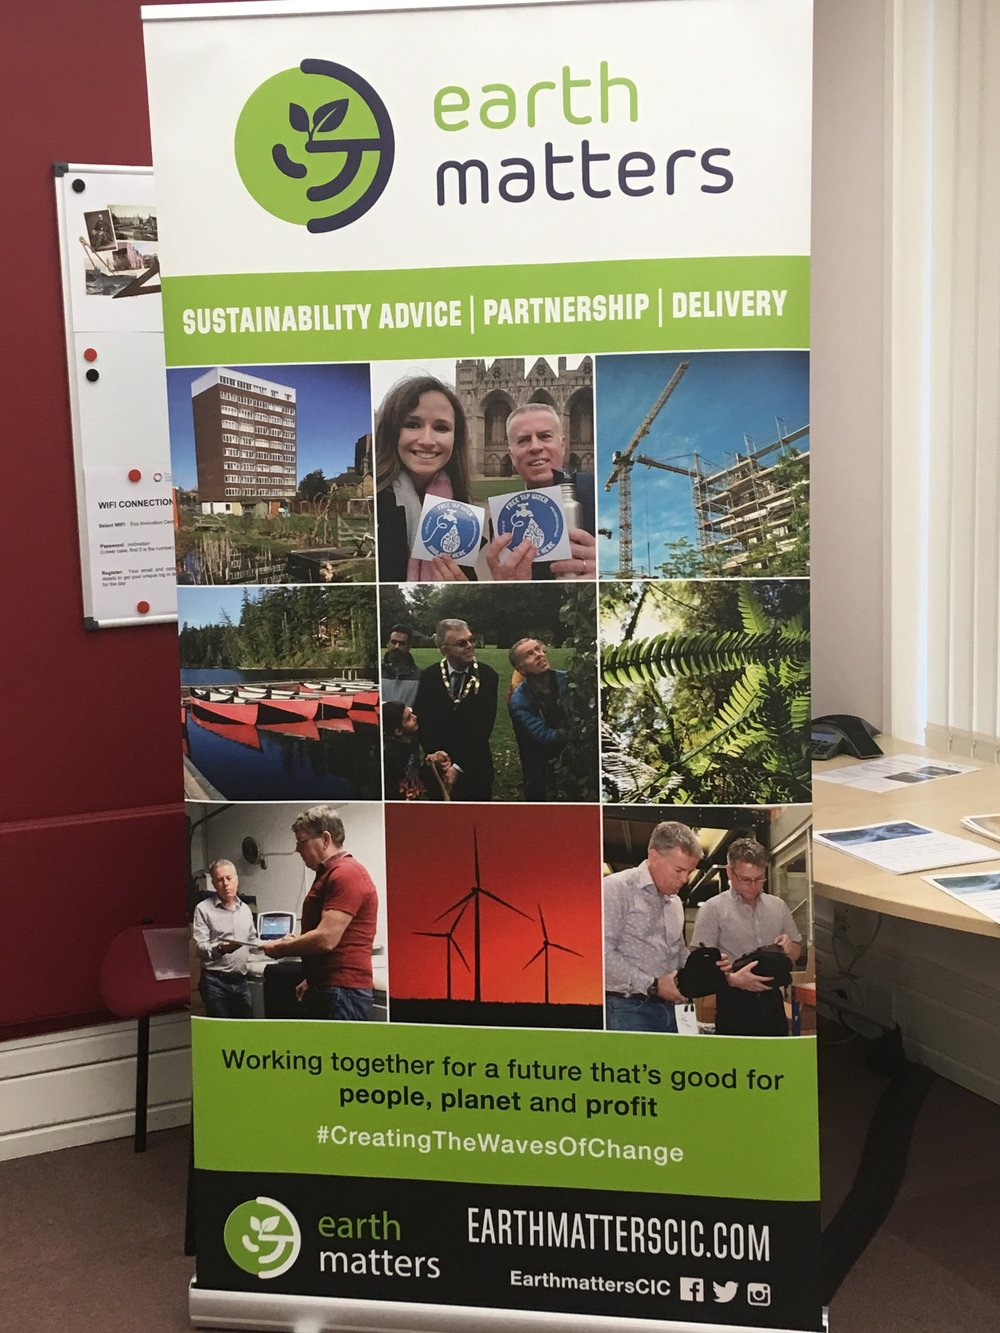 How green are your business premises? - Call Earth Matters and let us carry out our Diagnostic Test highlight opportunities for you to make savings, increase profitability, and create benefits for people and planet.Don't miss the chance to tell your story!